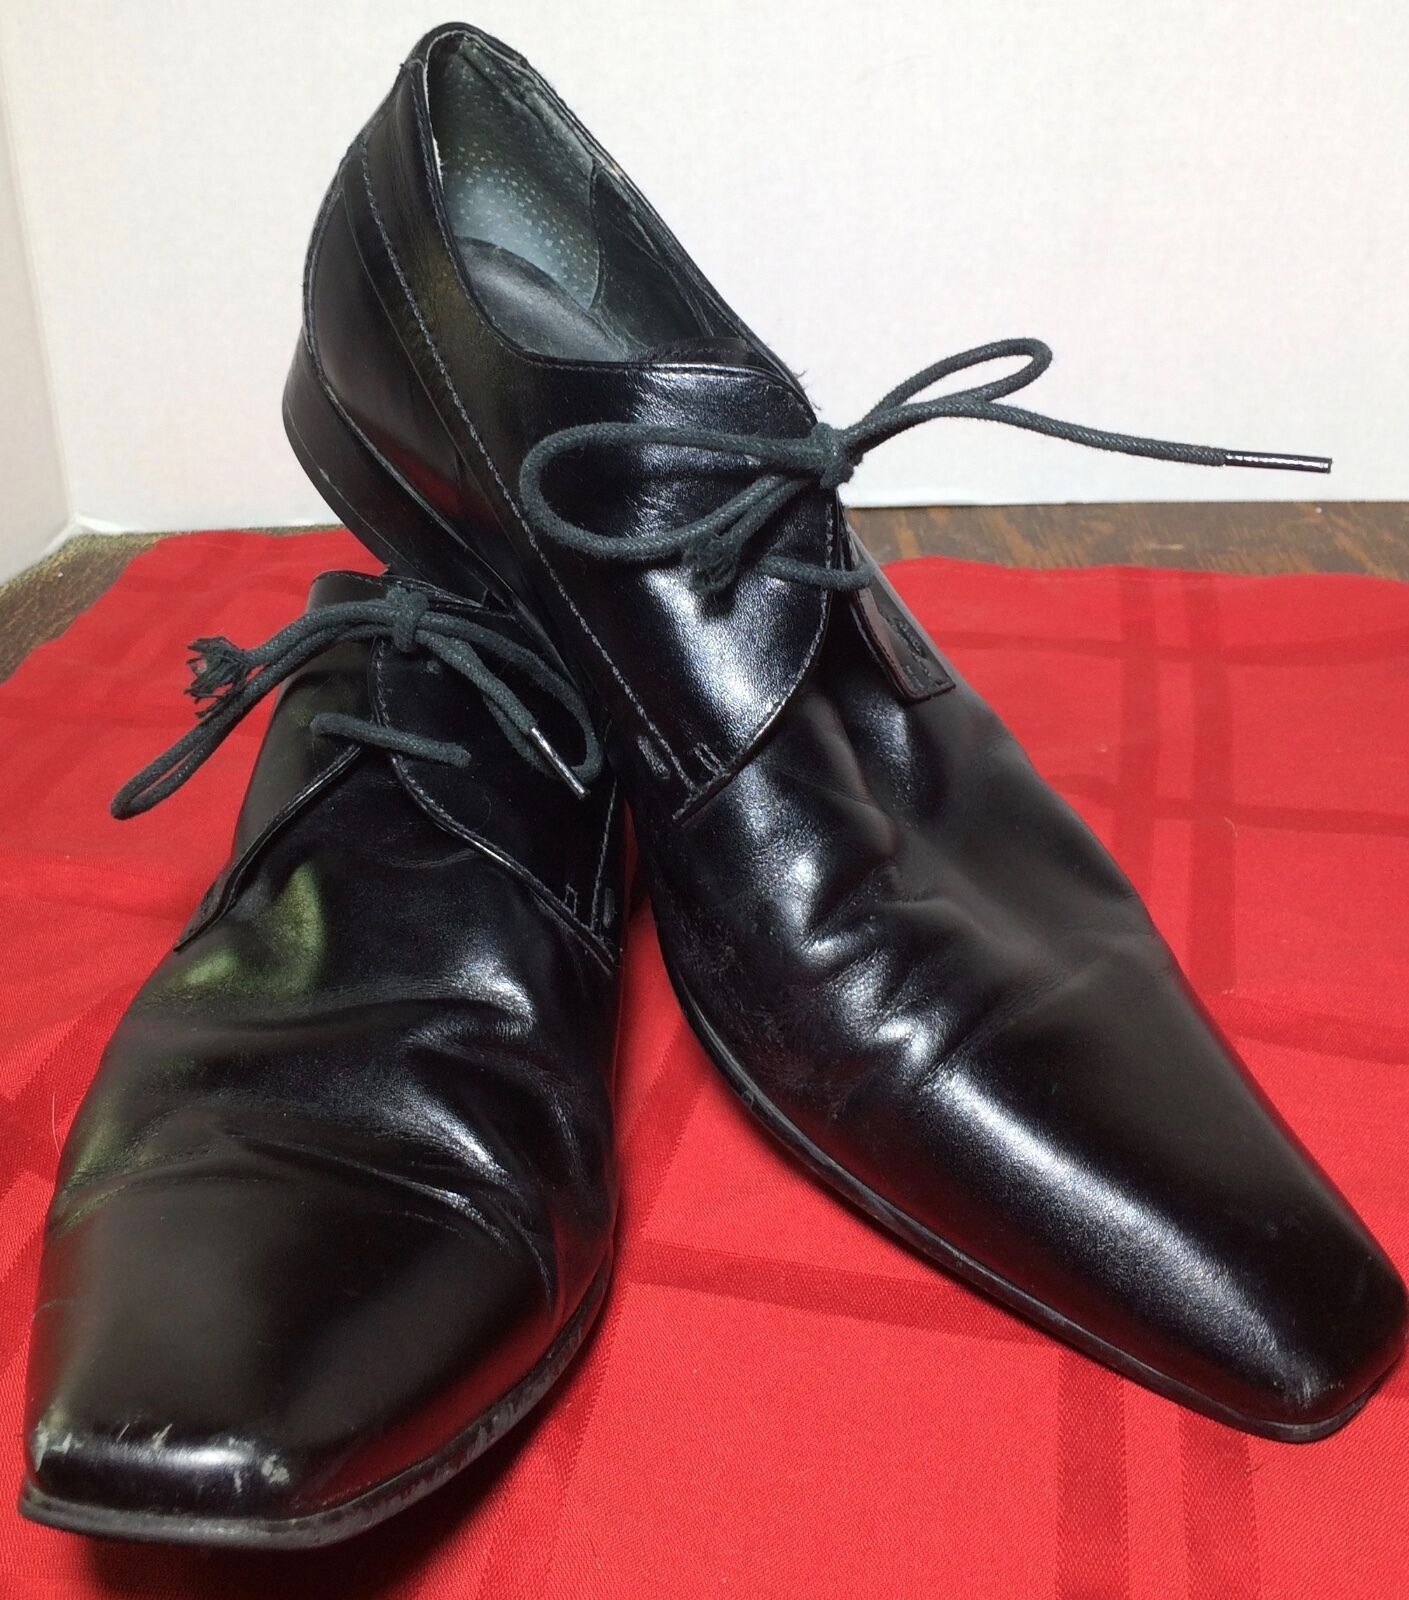 MEN'S SHOES ALDO BLACK LEATHER FORMAL SHOES MEN'S SIZE 43 40a6e2